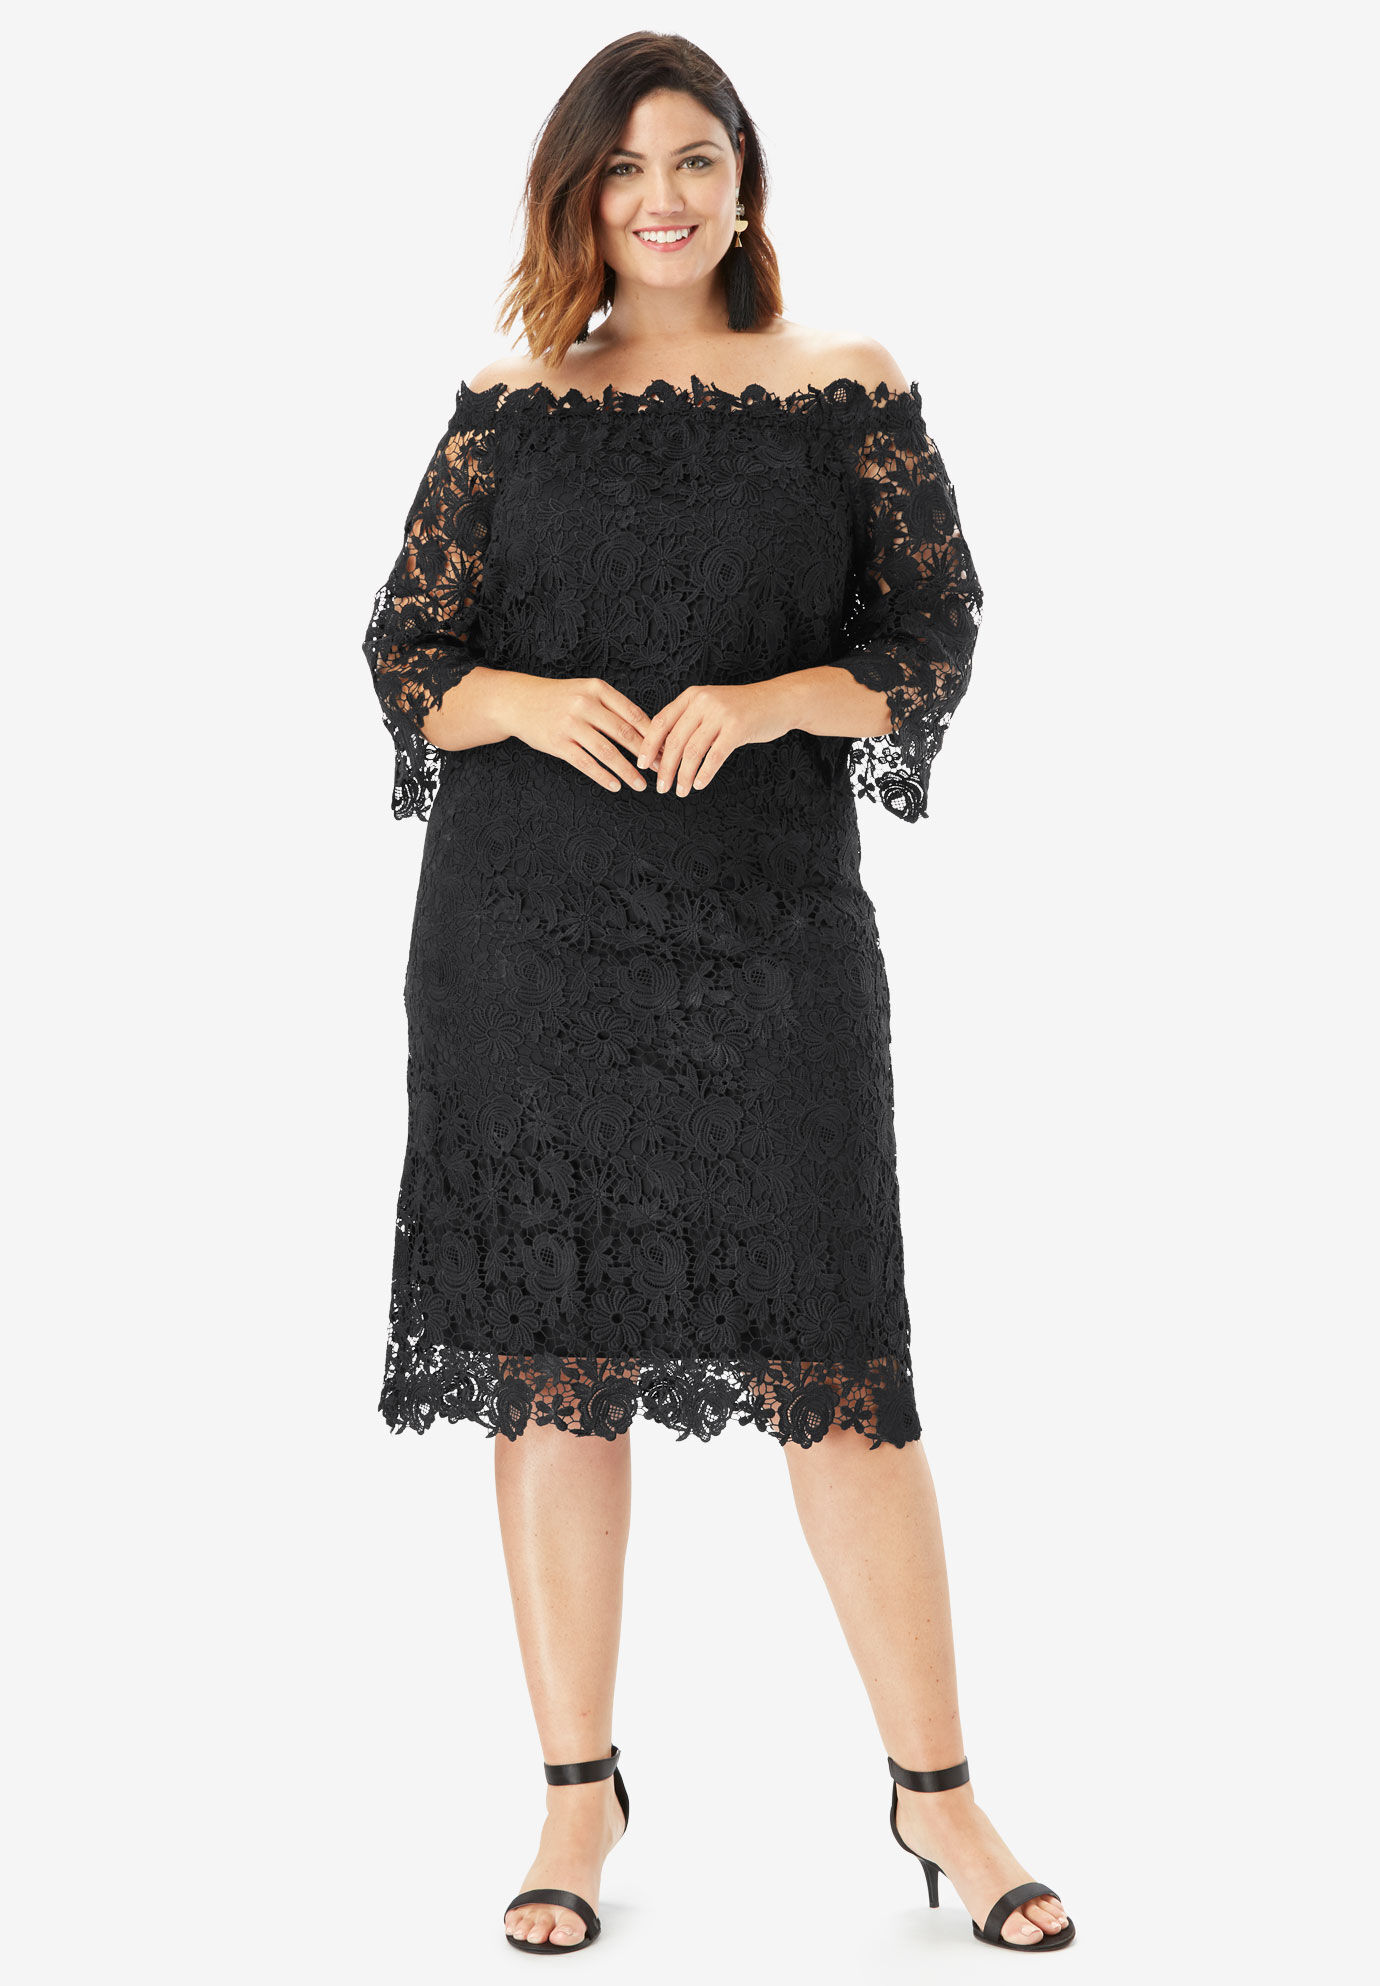 Special Occasion Dresses Plus Size Mid Calf